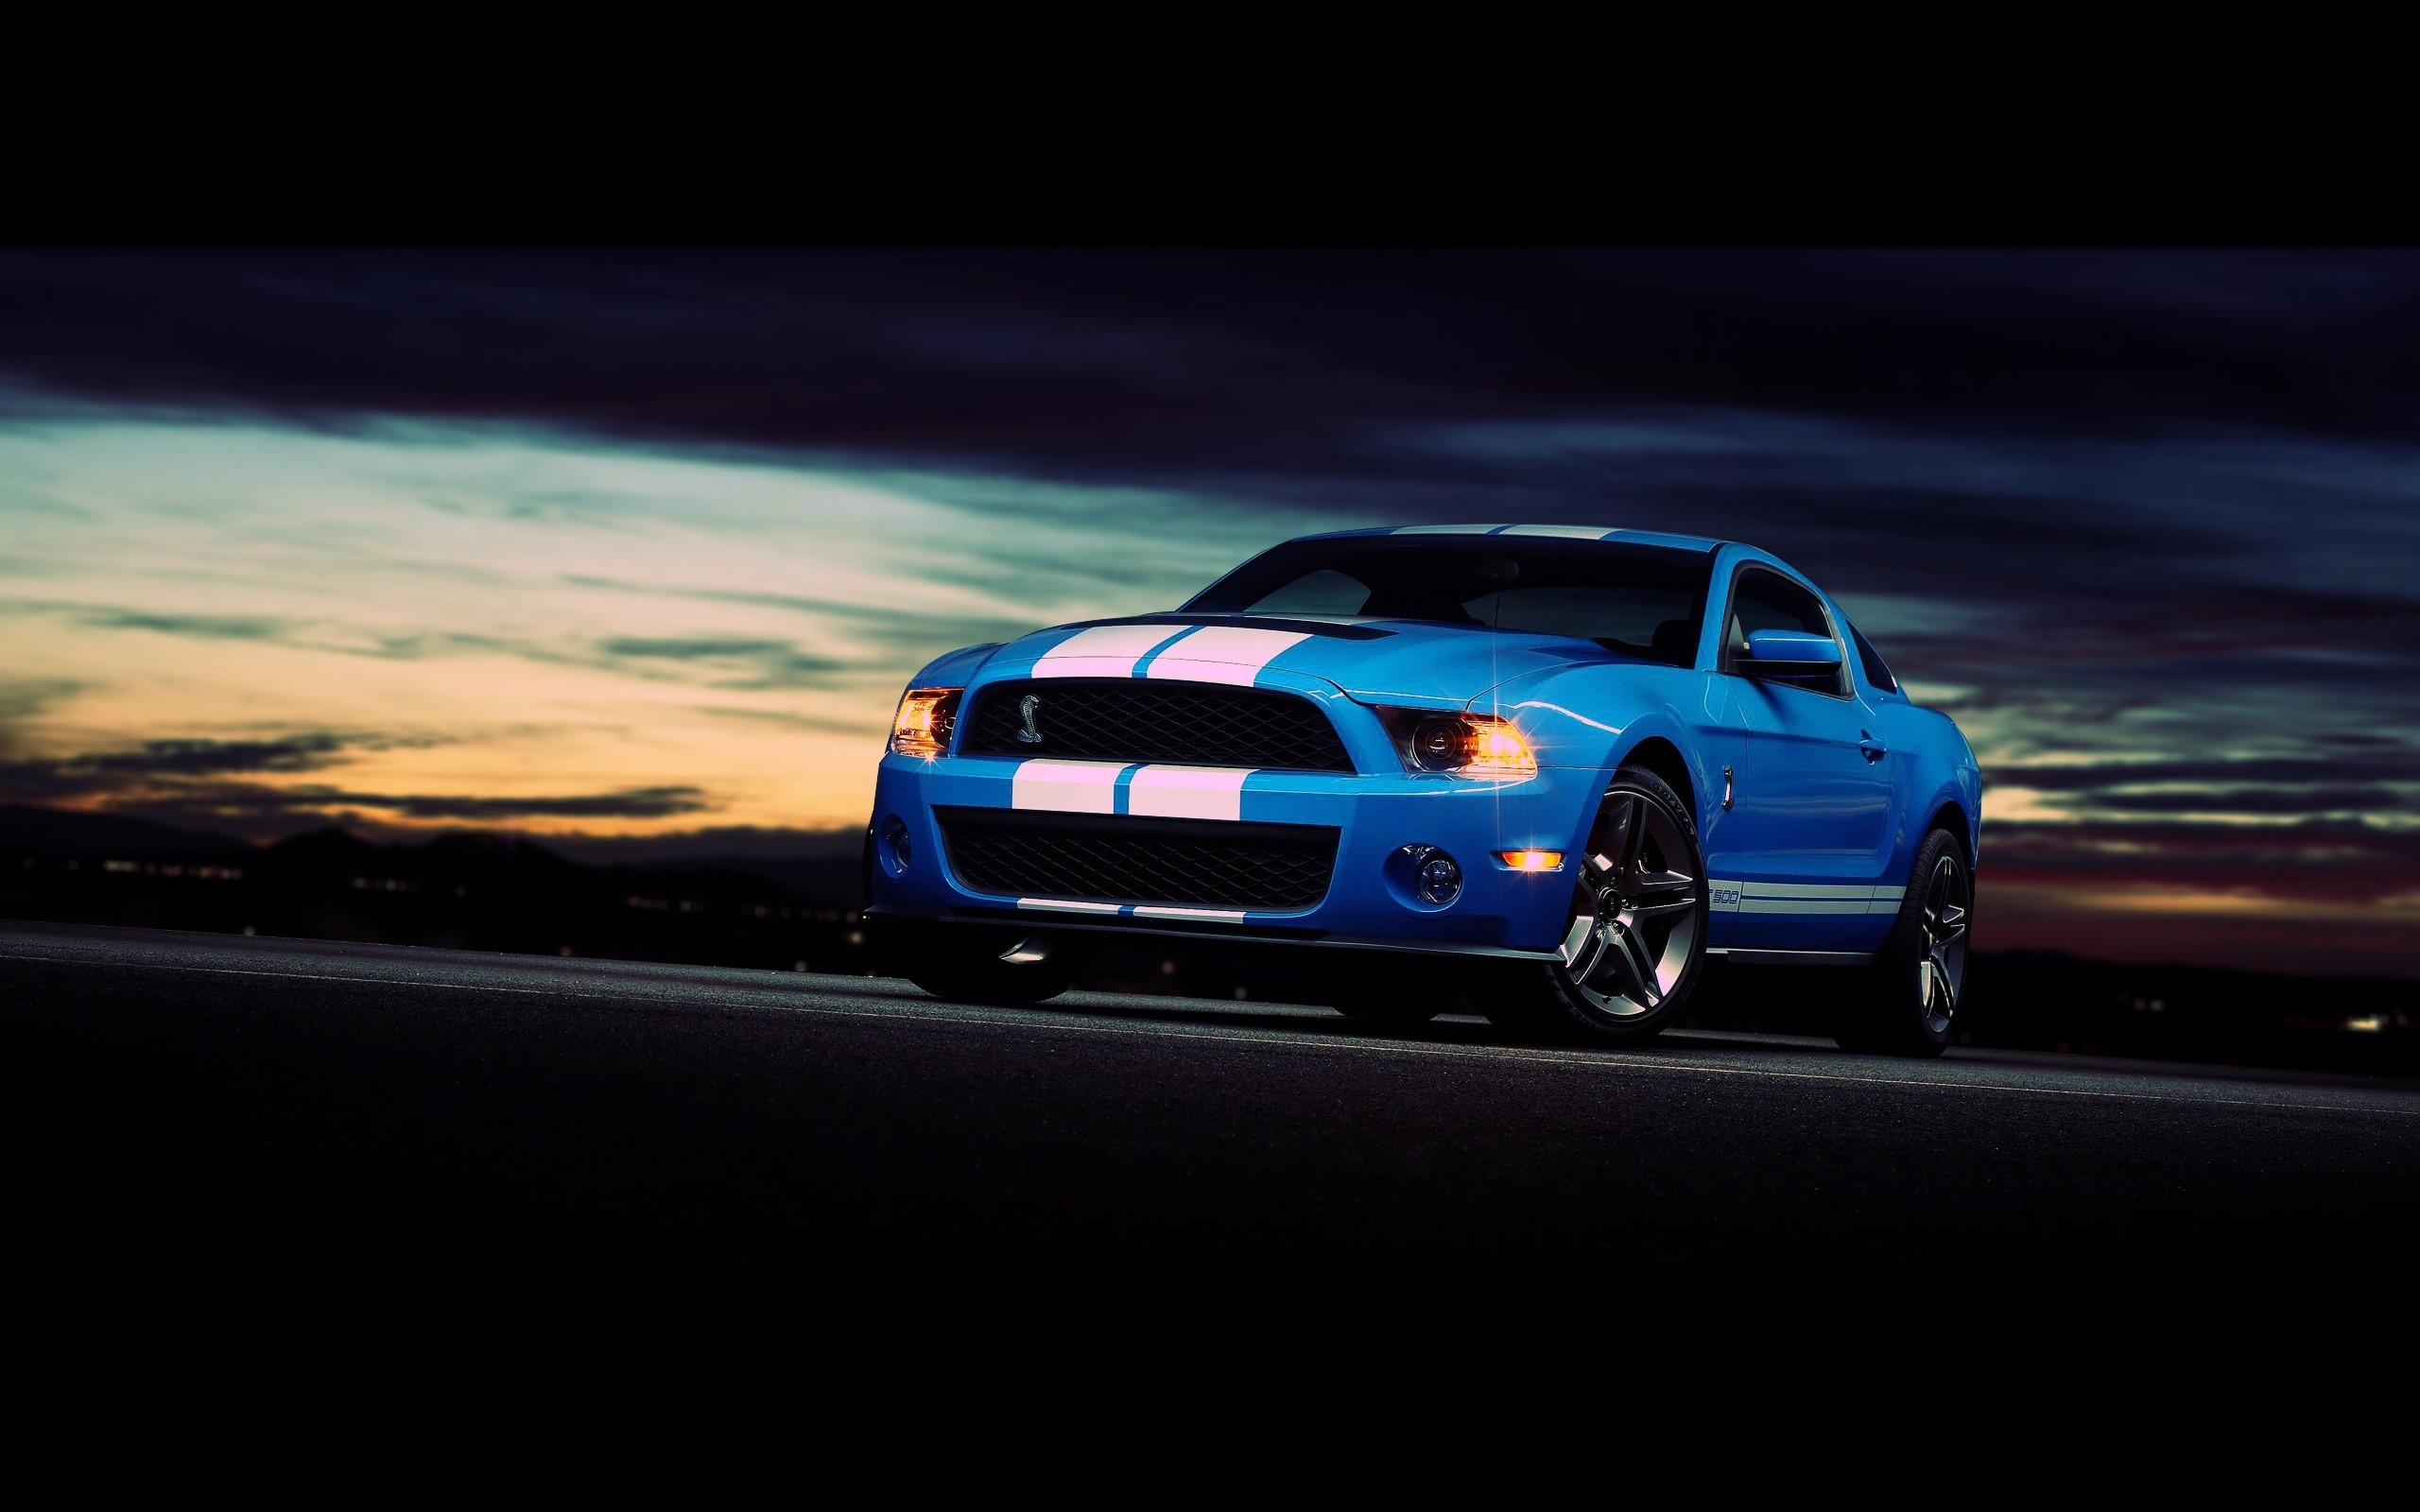 Ford Mustang Shelby GT500 Computer Wallpapers Desktop 2560x1600